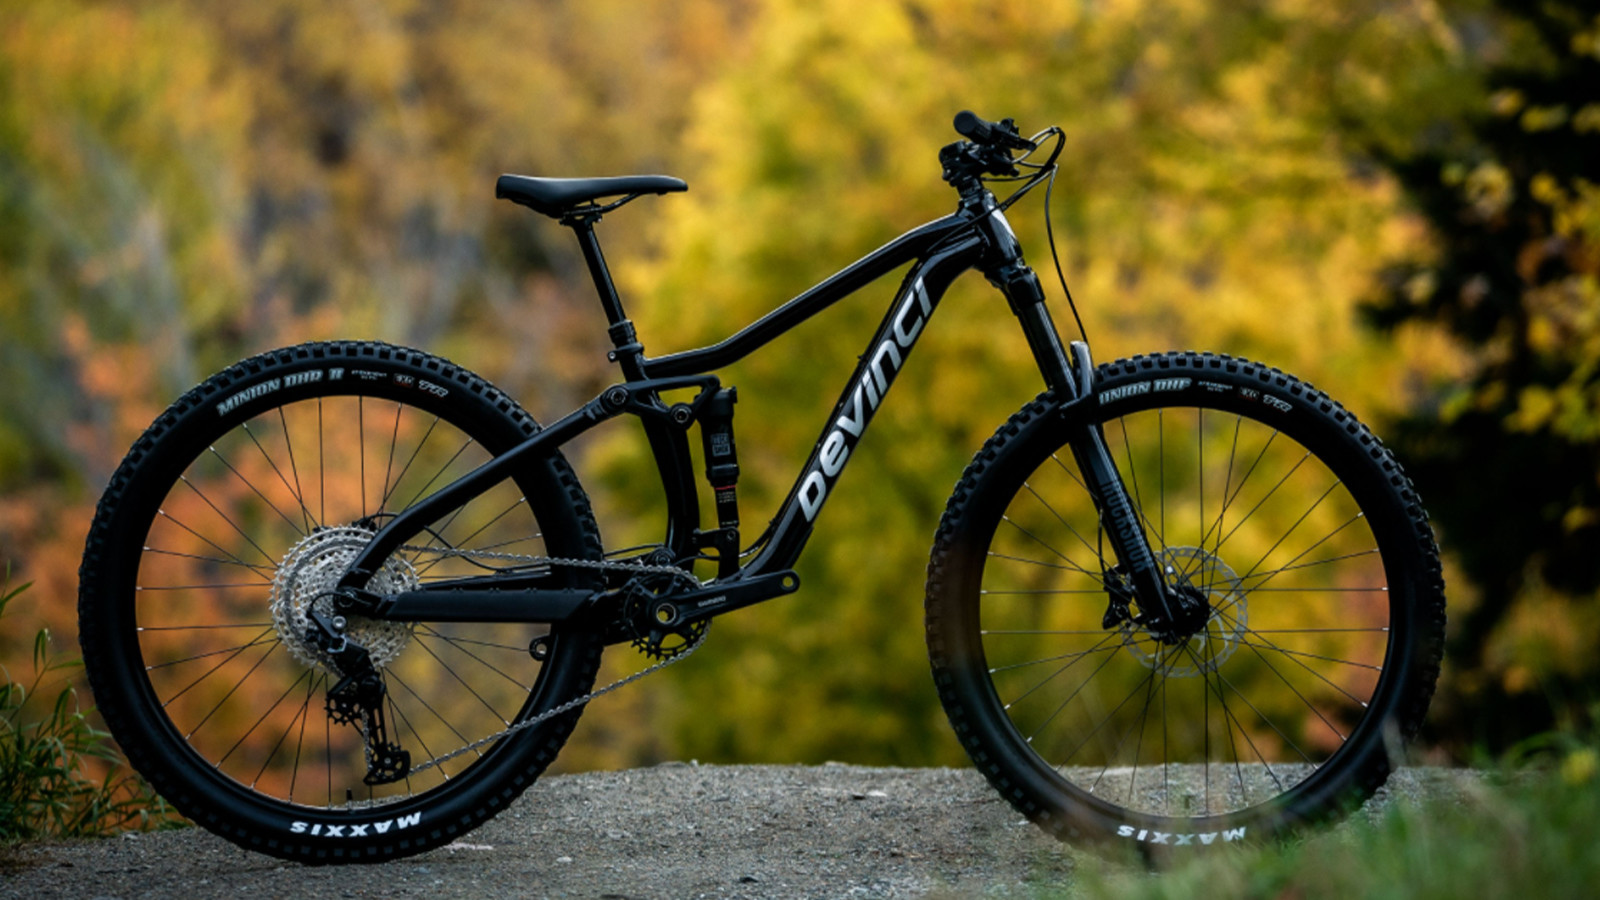 $2,099 - Size-Specific Wheel Sizes, Two Build Options, and Made in Canada. Meet Devinci's All-New Marshall Trail Bike